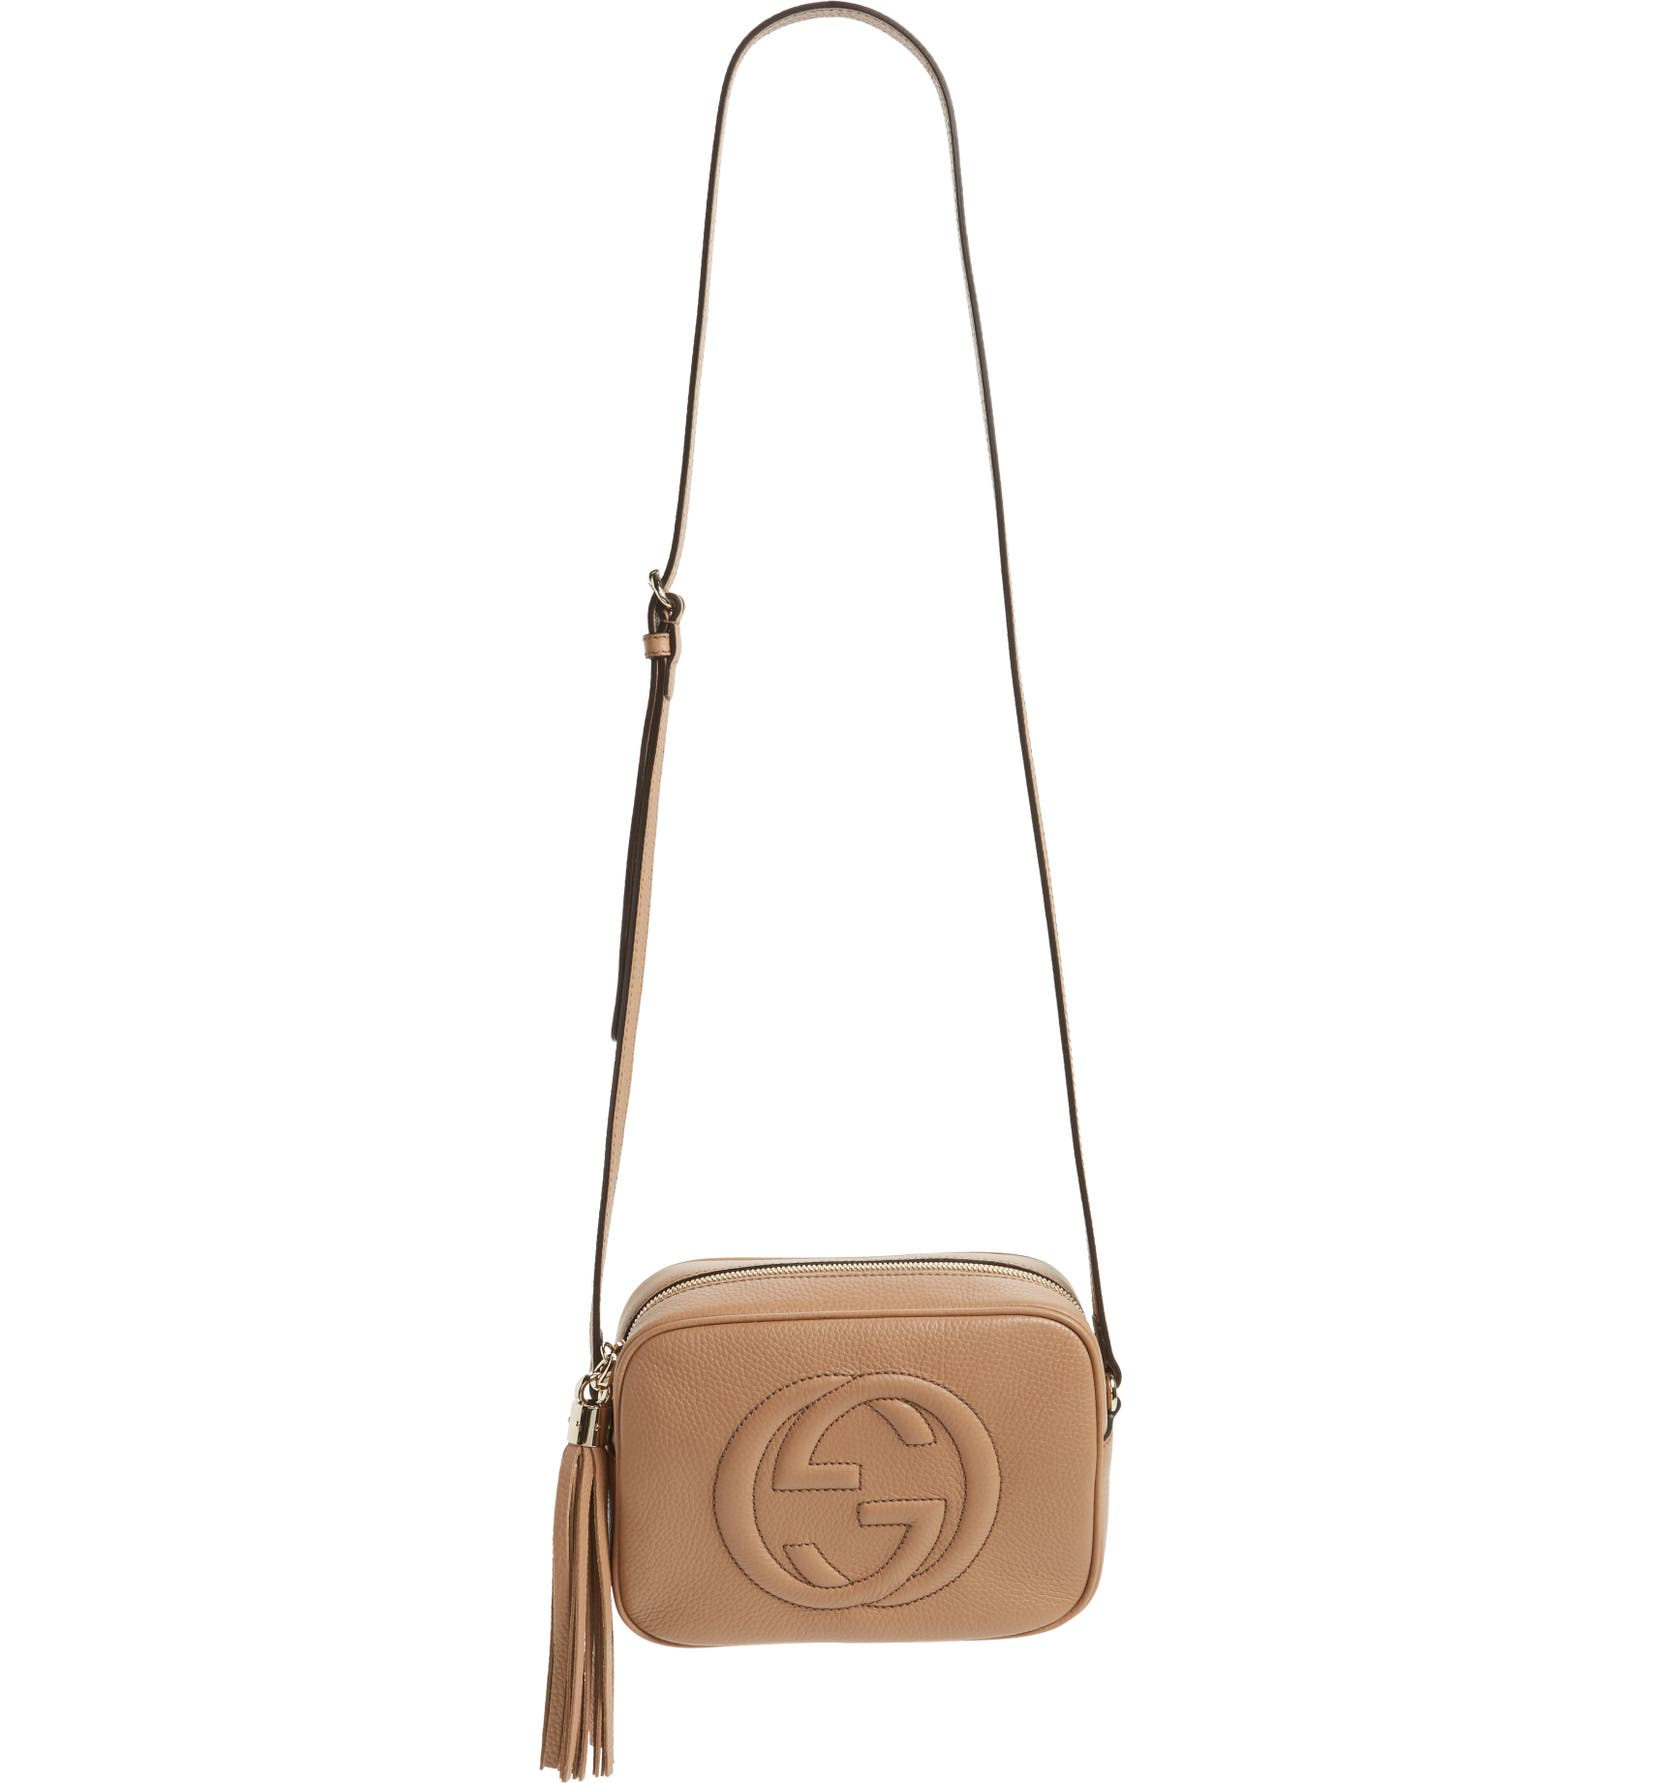 Gucci Soho Disco Leather Bag  c6144c872